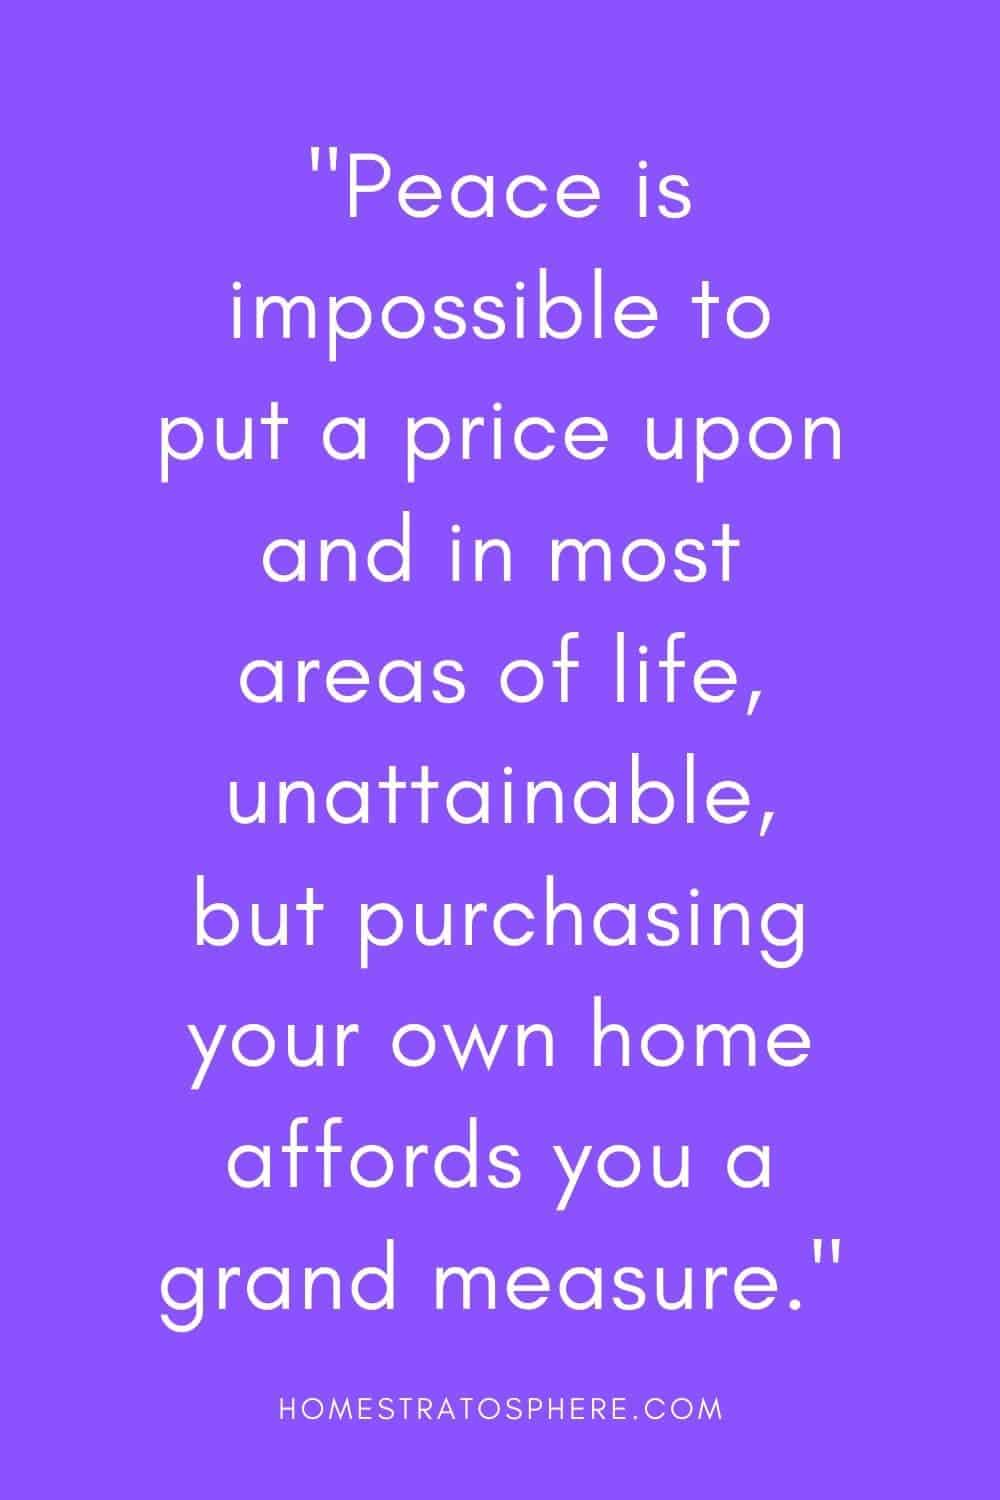 """Peace is impossible to put a price upon and in most areas of life, unattainable, but purchasing your own home affords you a grand measure."""